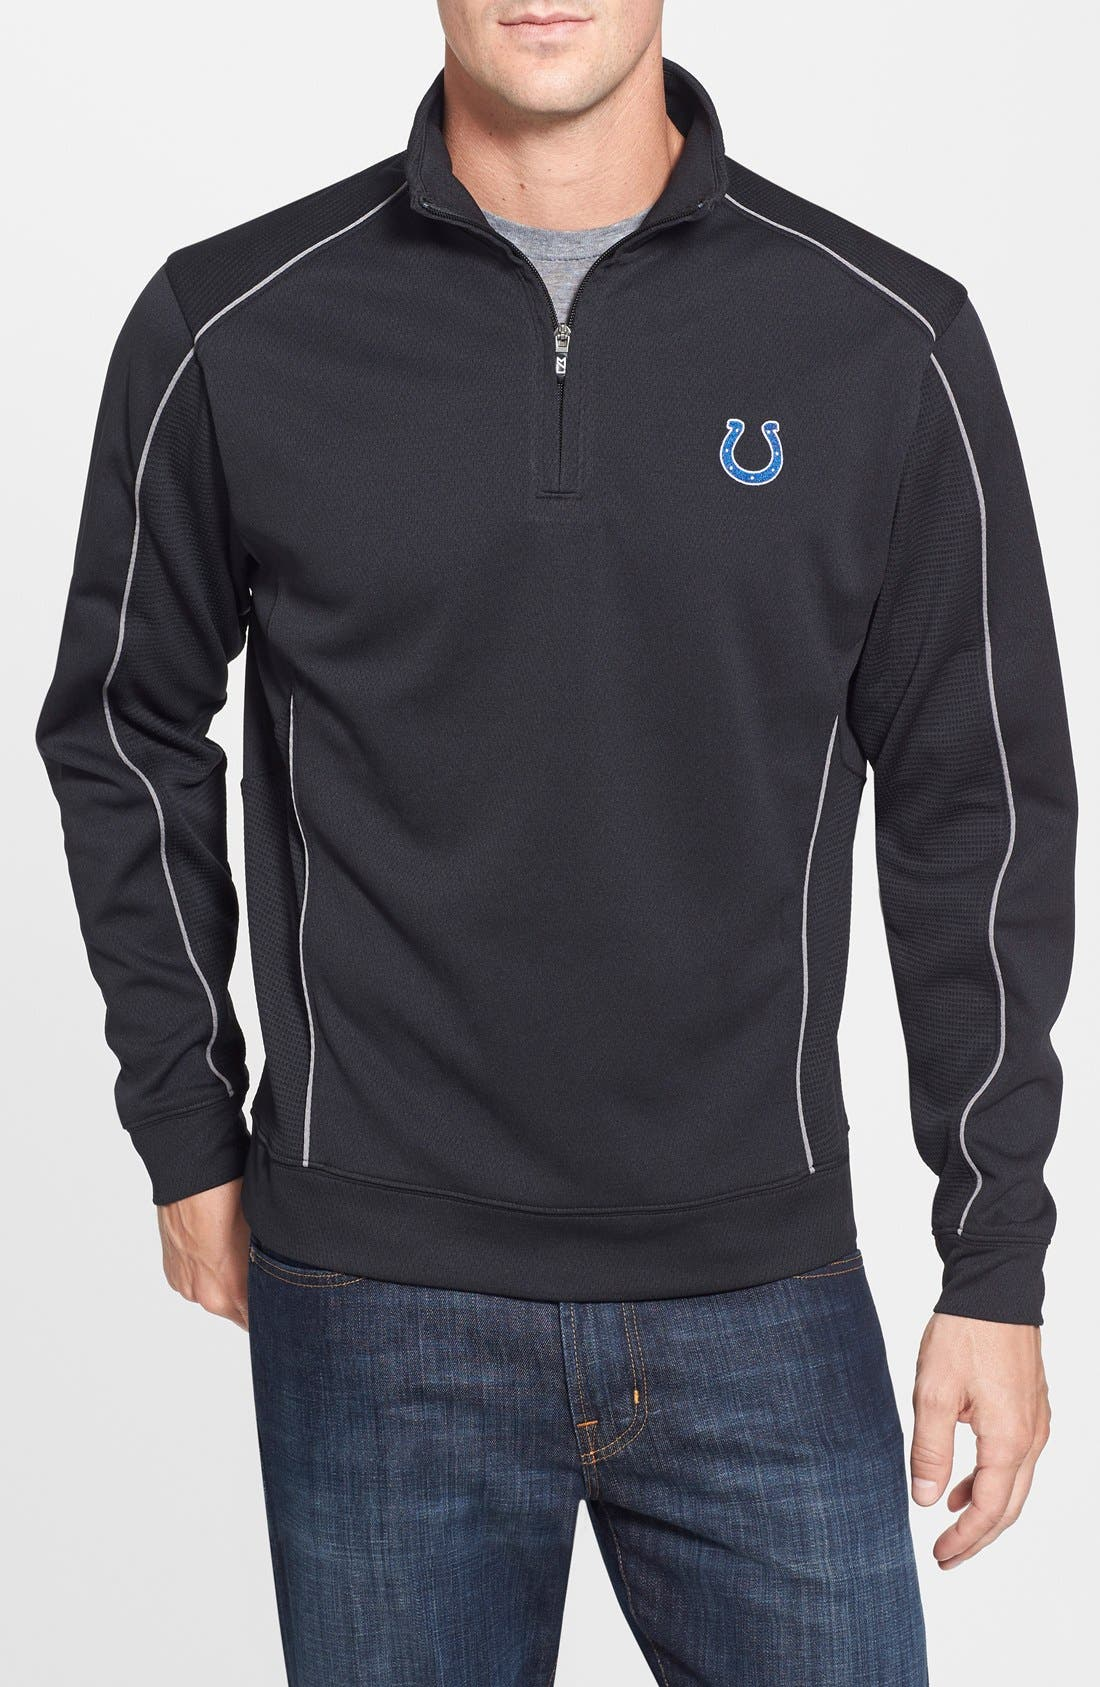 Indianapolis Colts - Edge DryTec Moisture Wicking Half Zip Pullover,                             Main thumbnail 1, color,                             Black